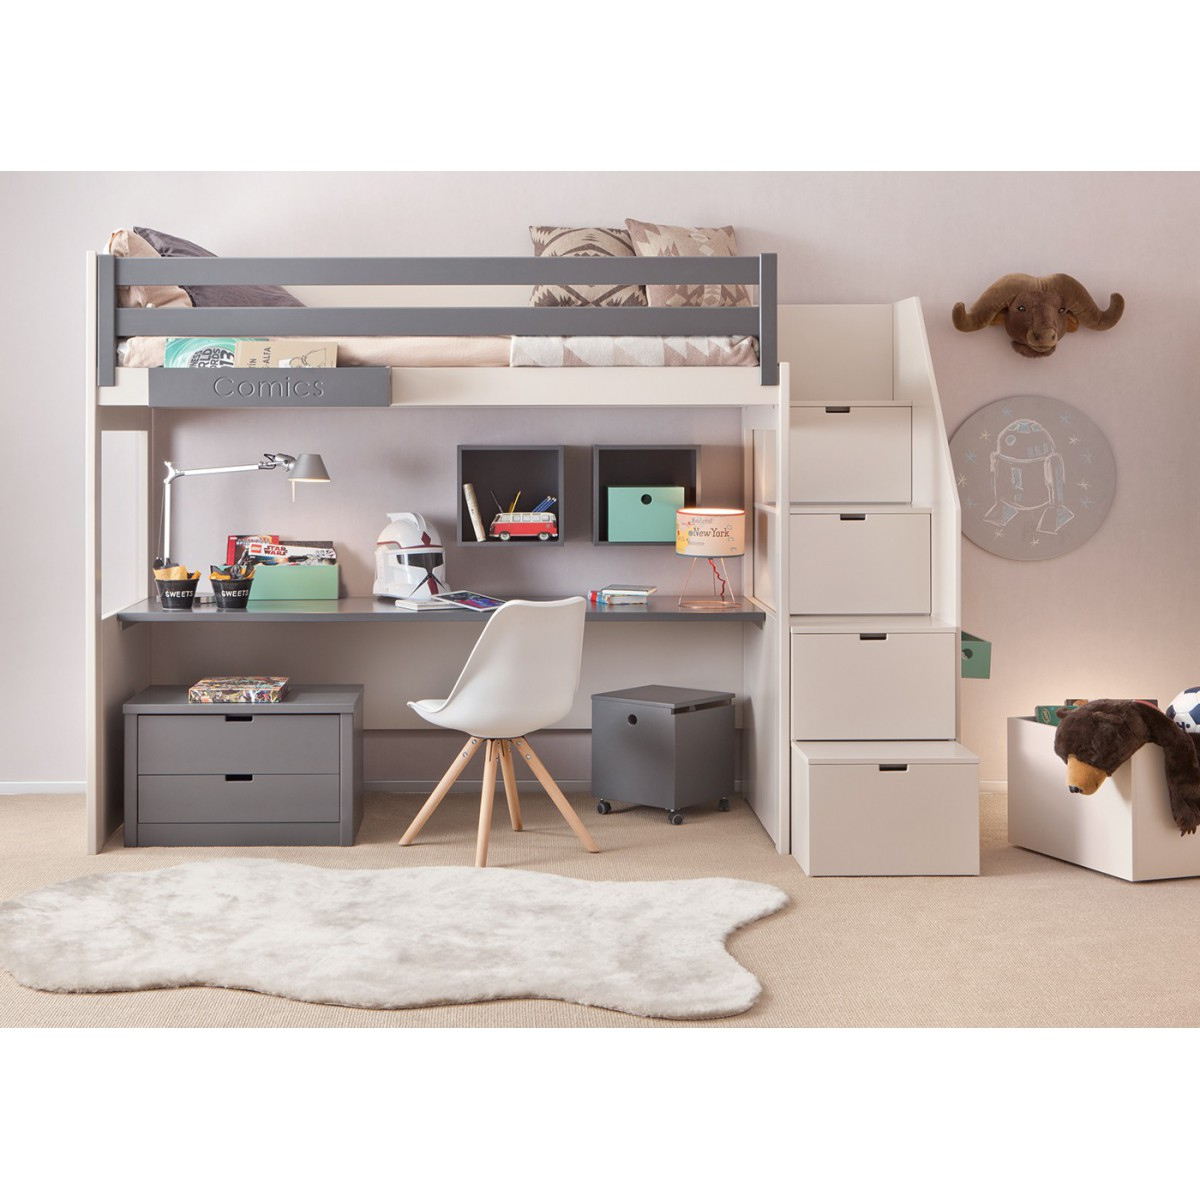 Chambre design sp cial ados juniors sign enfant design - Enfant lit mezzanine ...